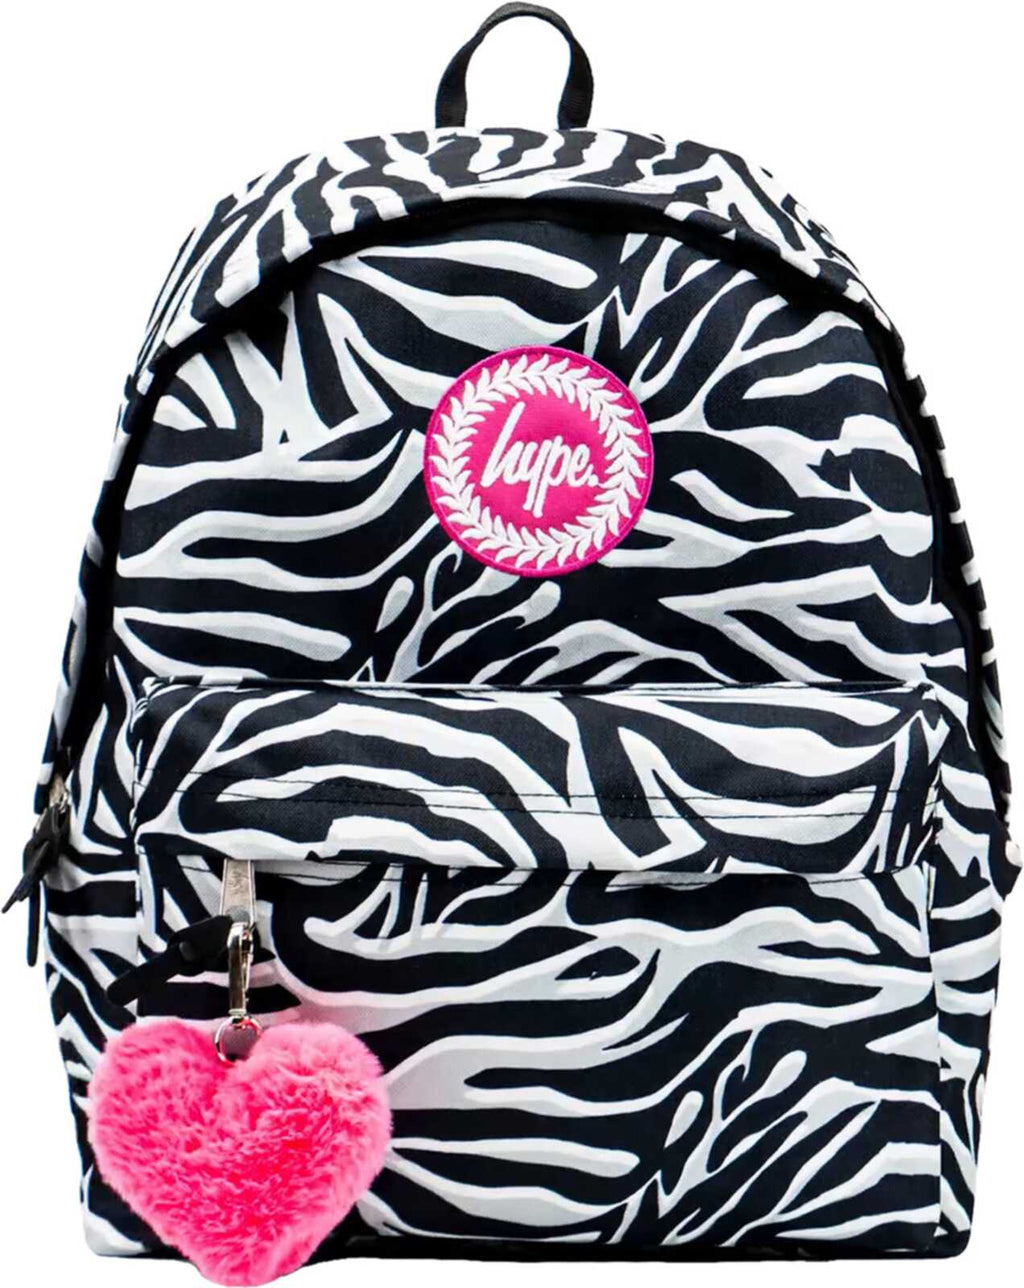 Hype Zebra Print Pom Pom Backpack Bag Black/White